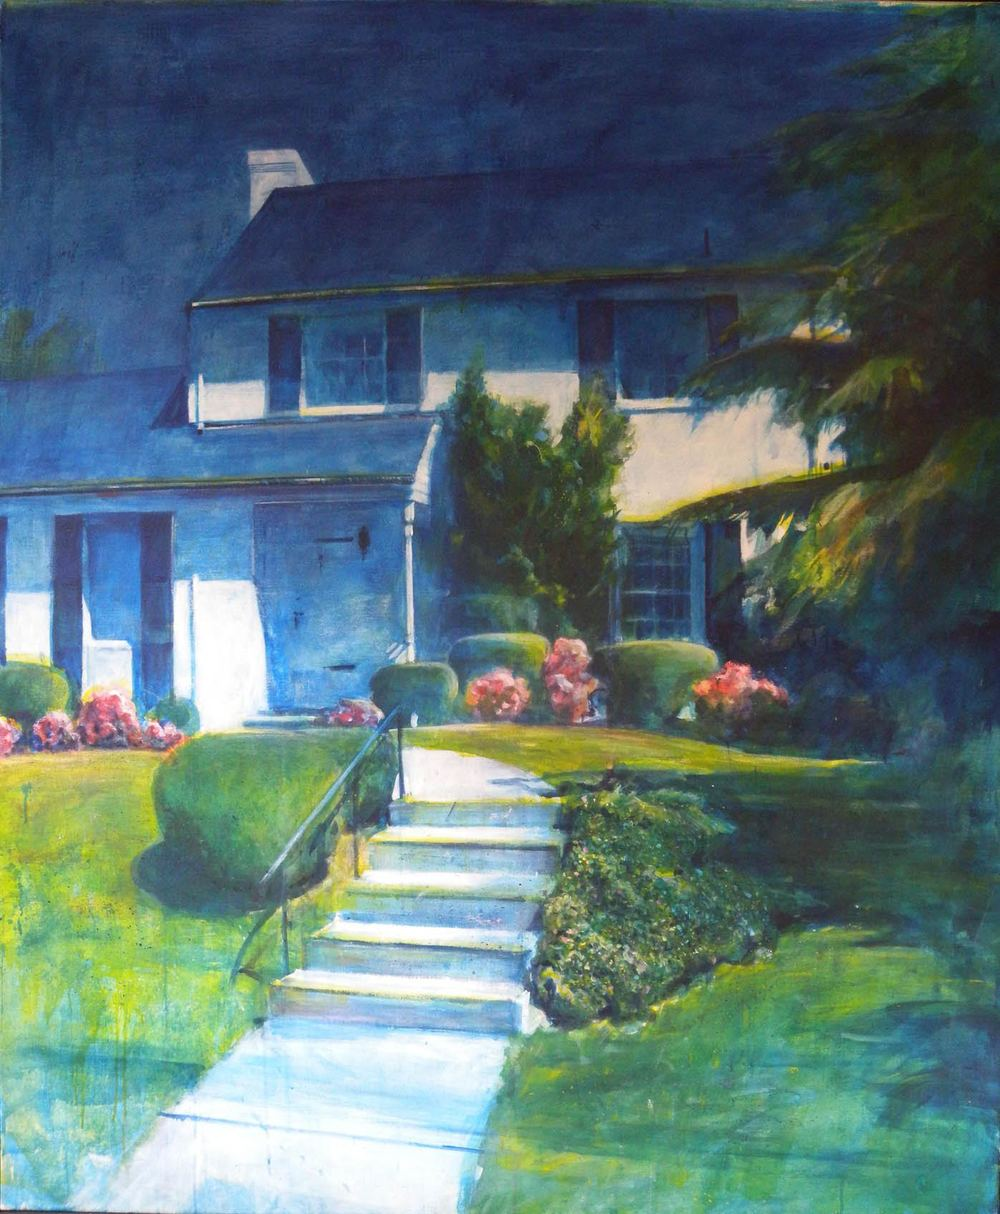 Suburban Idyll, stained canvas, 5' x 5', 1970